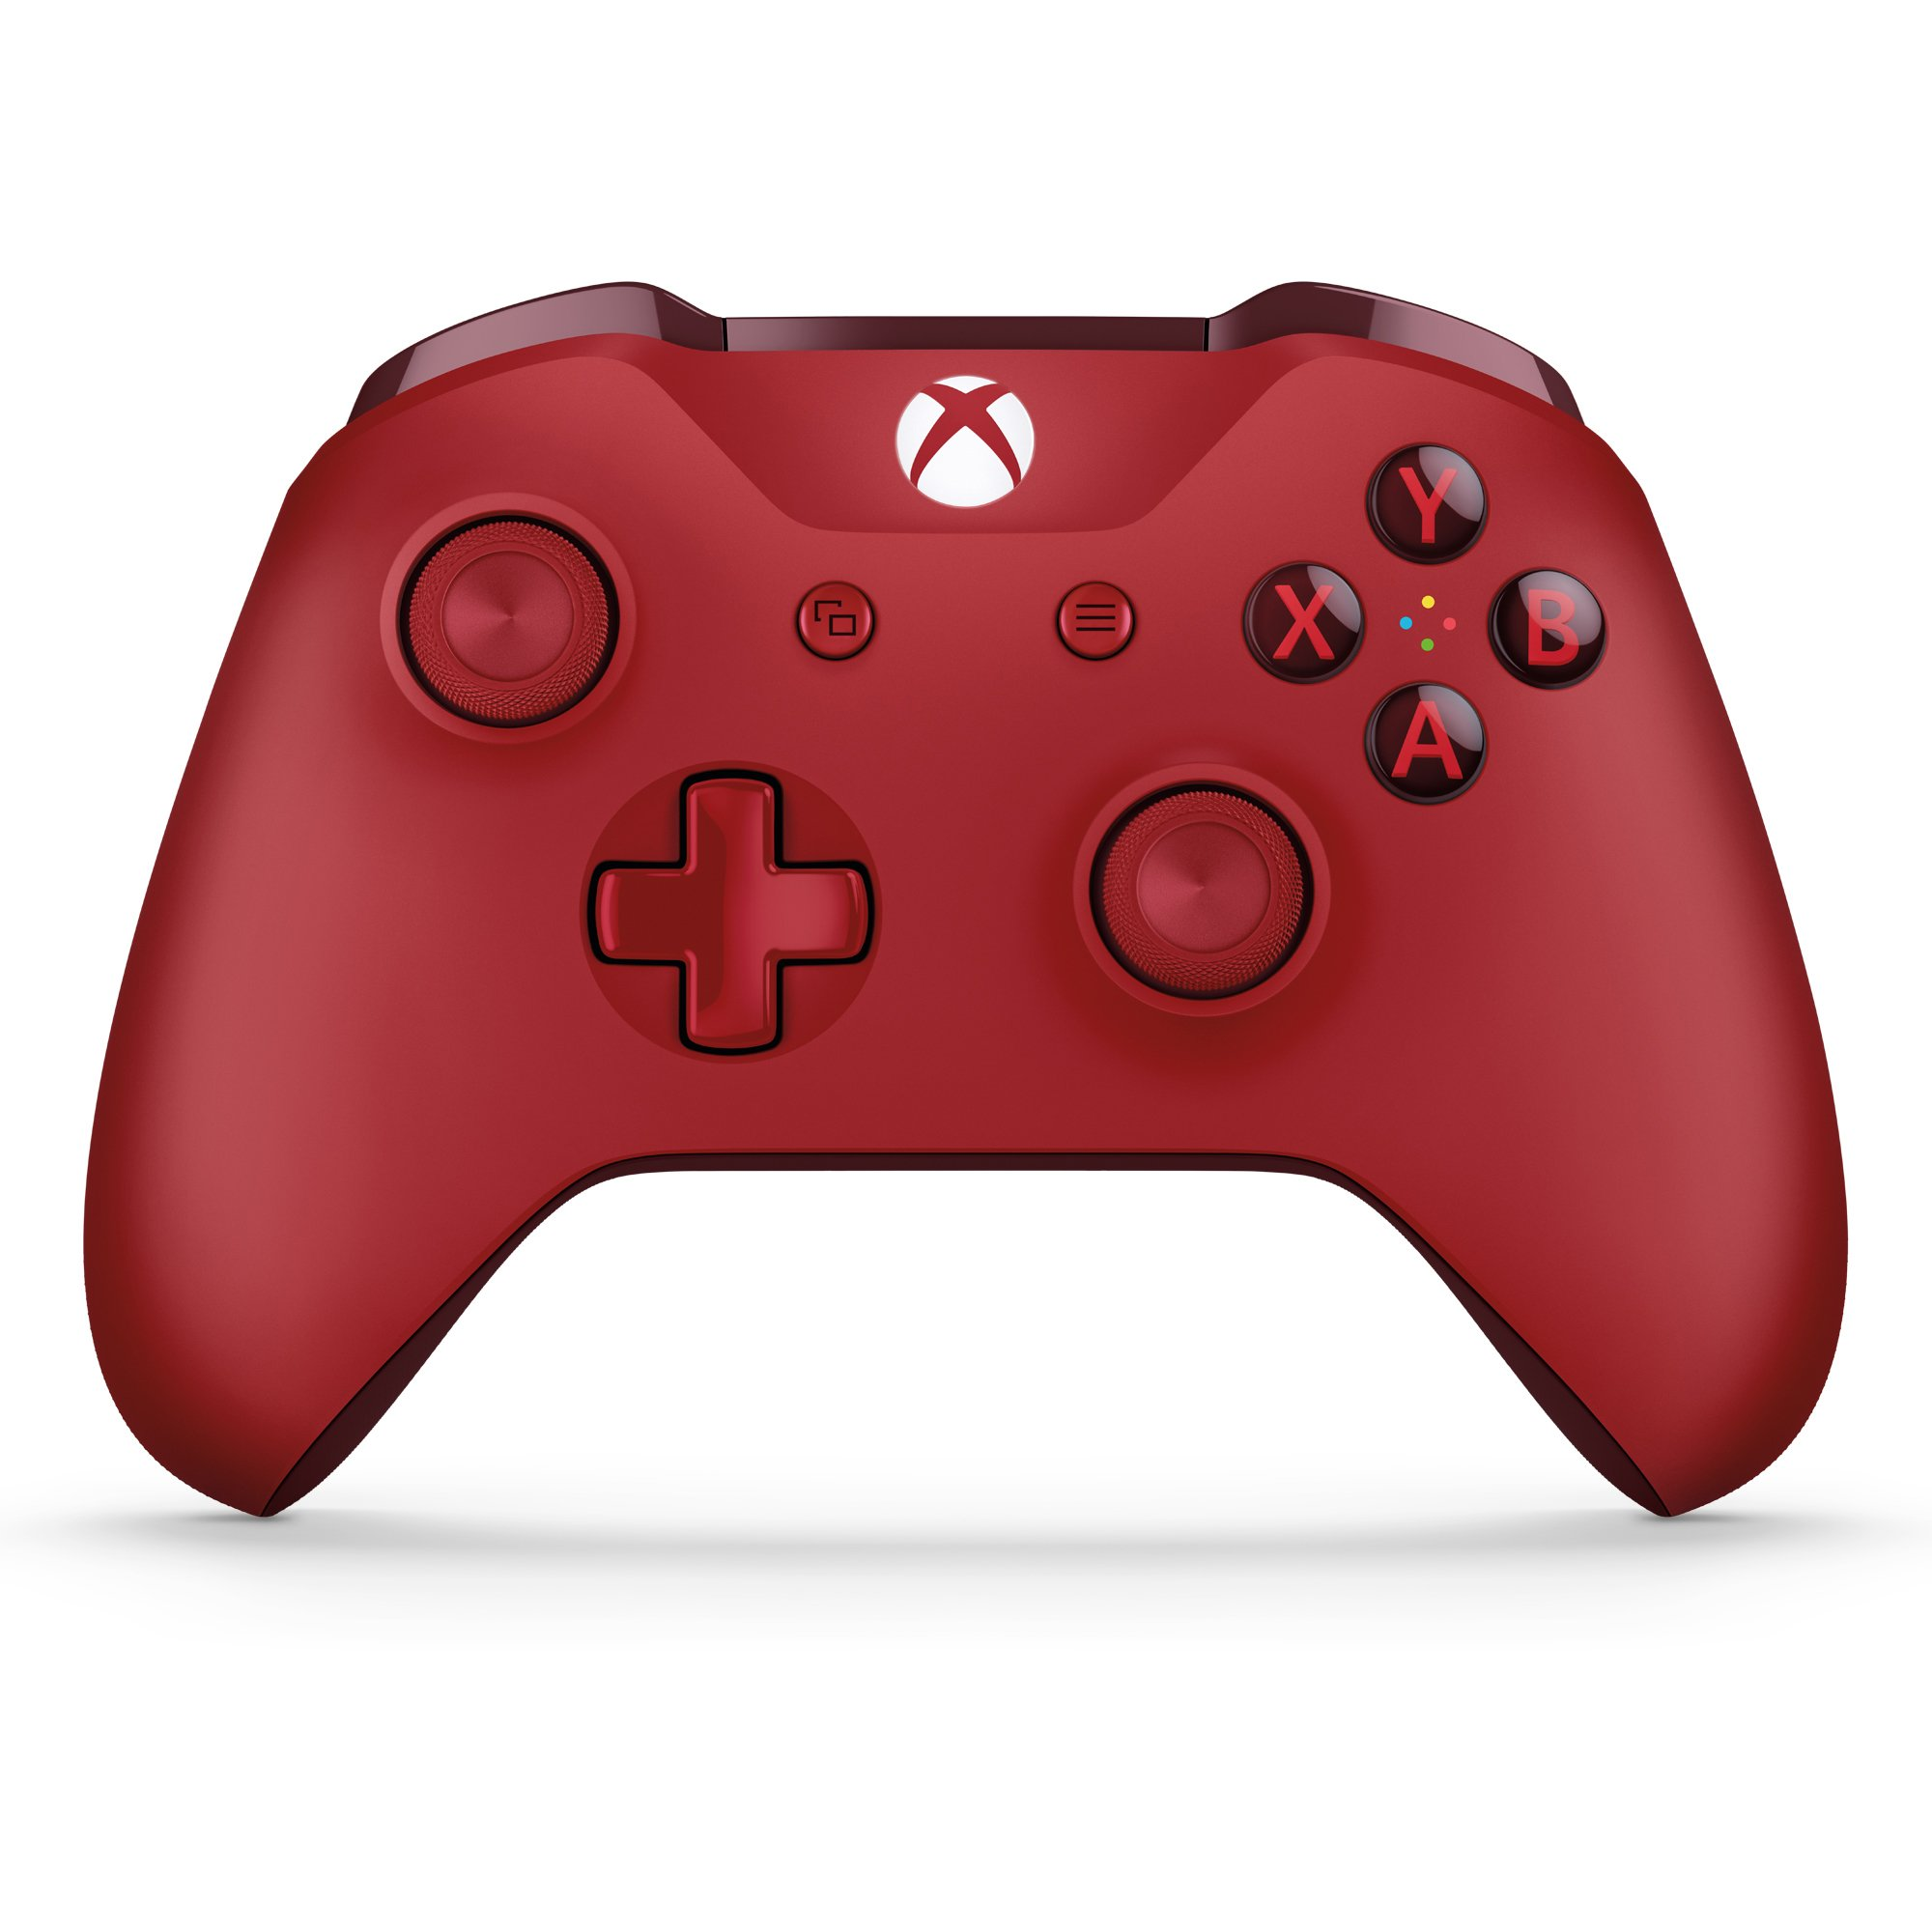 Xbox Wireless Controller - Red by Microsoft (Image #1)